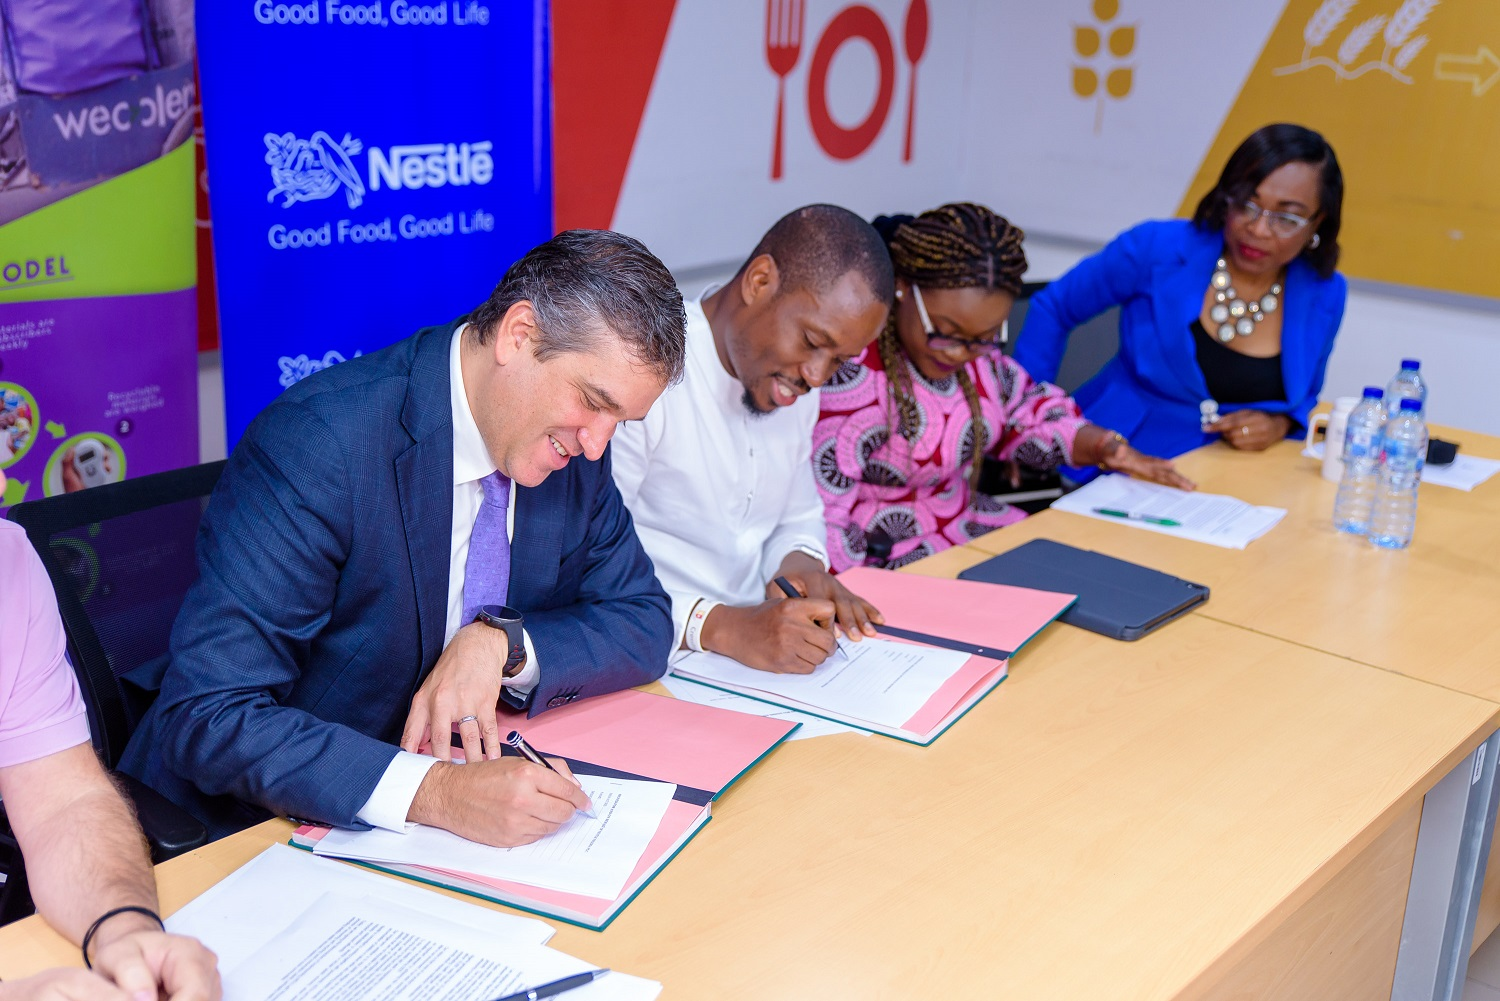 Nestlé Nigeria, Wecylers tackle plastic waste pollution in Lagos